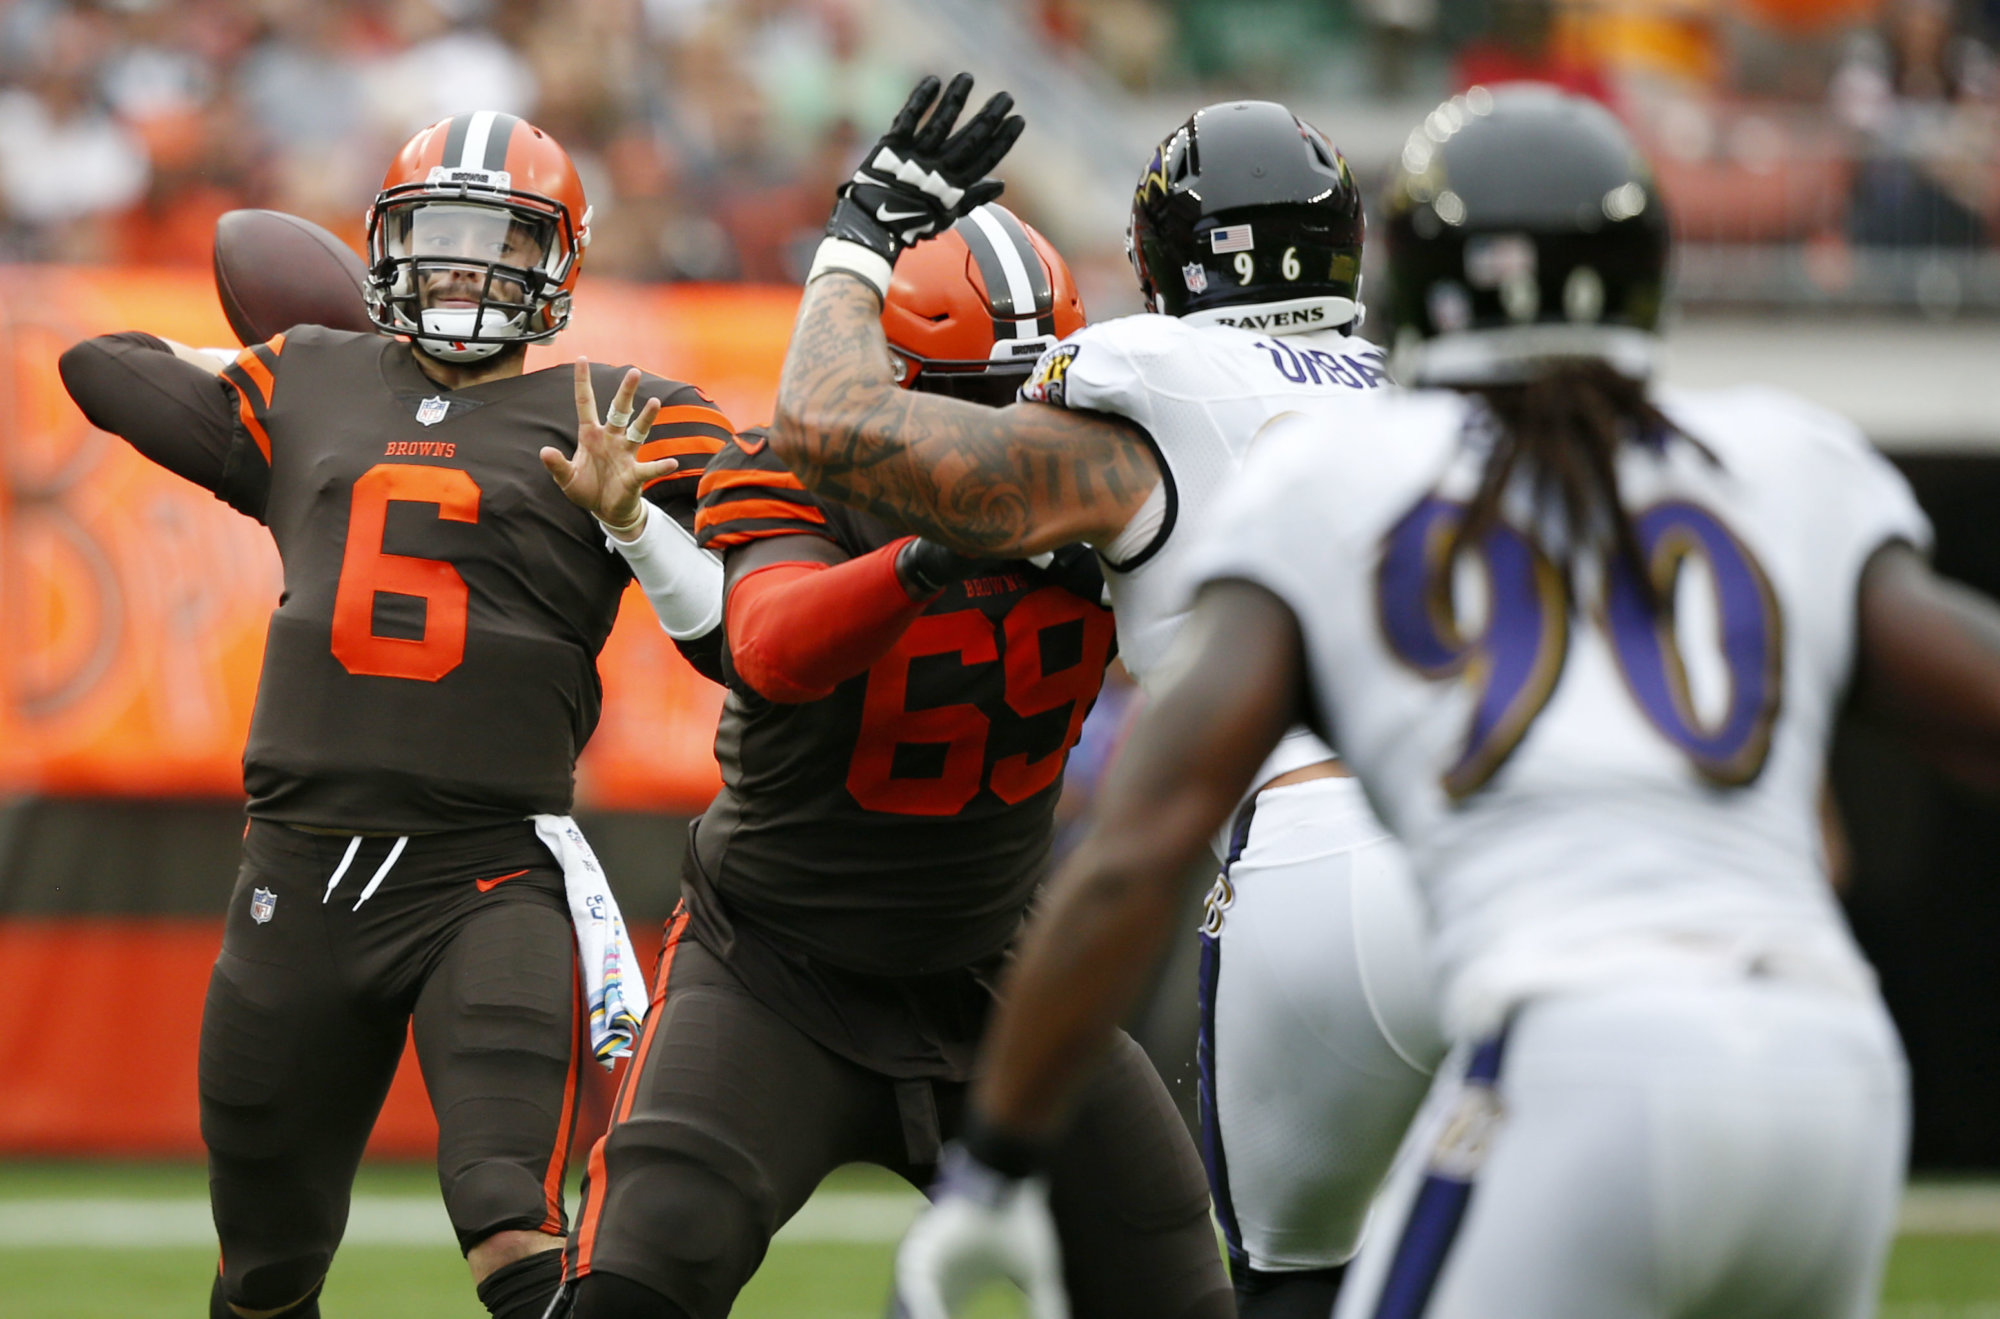 Cleveland Browns quarterback Baker Mayfield (6) prepares to throw against the Baltimore Ravens during the first half of an NFL football game, Sunday, Oct. 7, 2018, in Cleveland. (AP Photo/Ron Schwane)